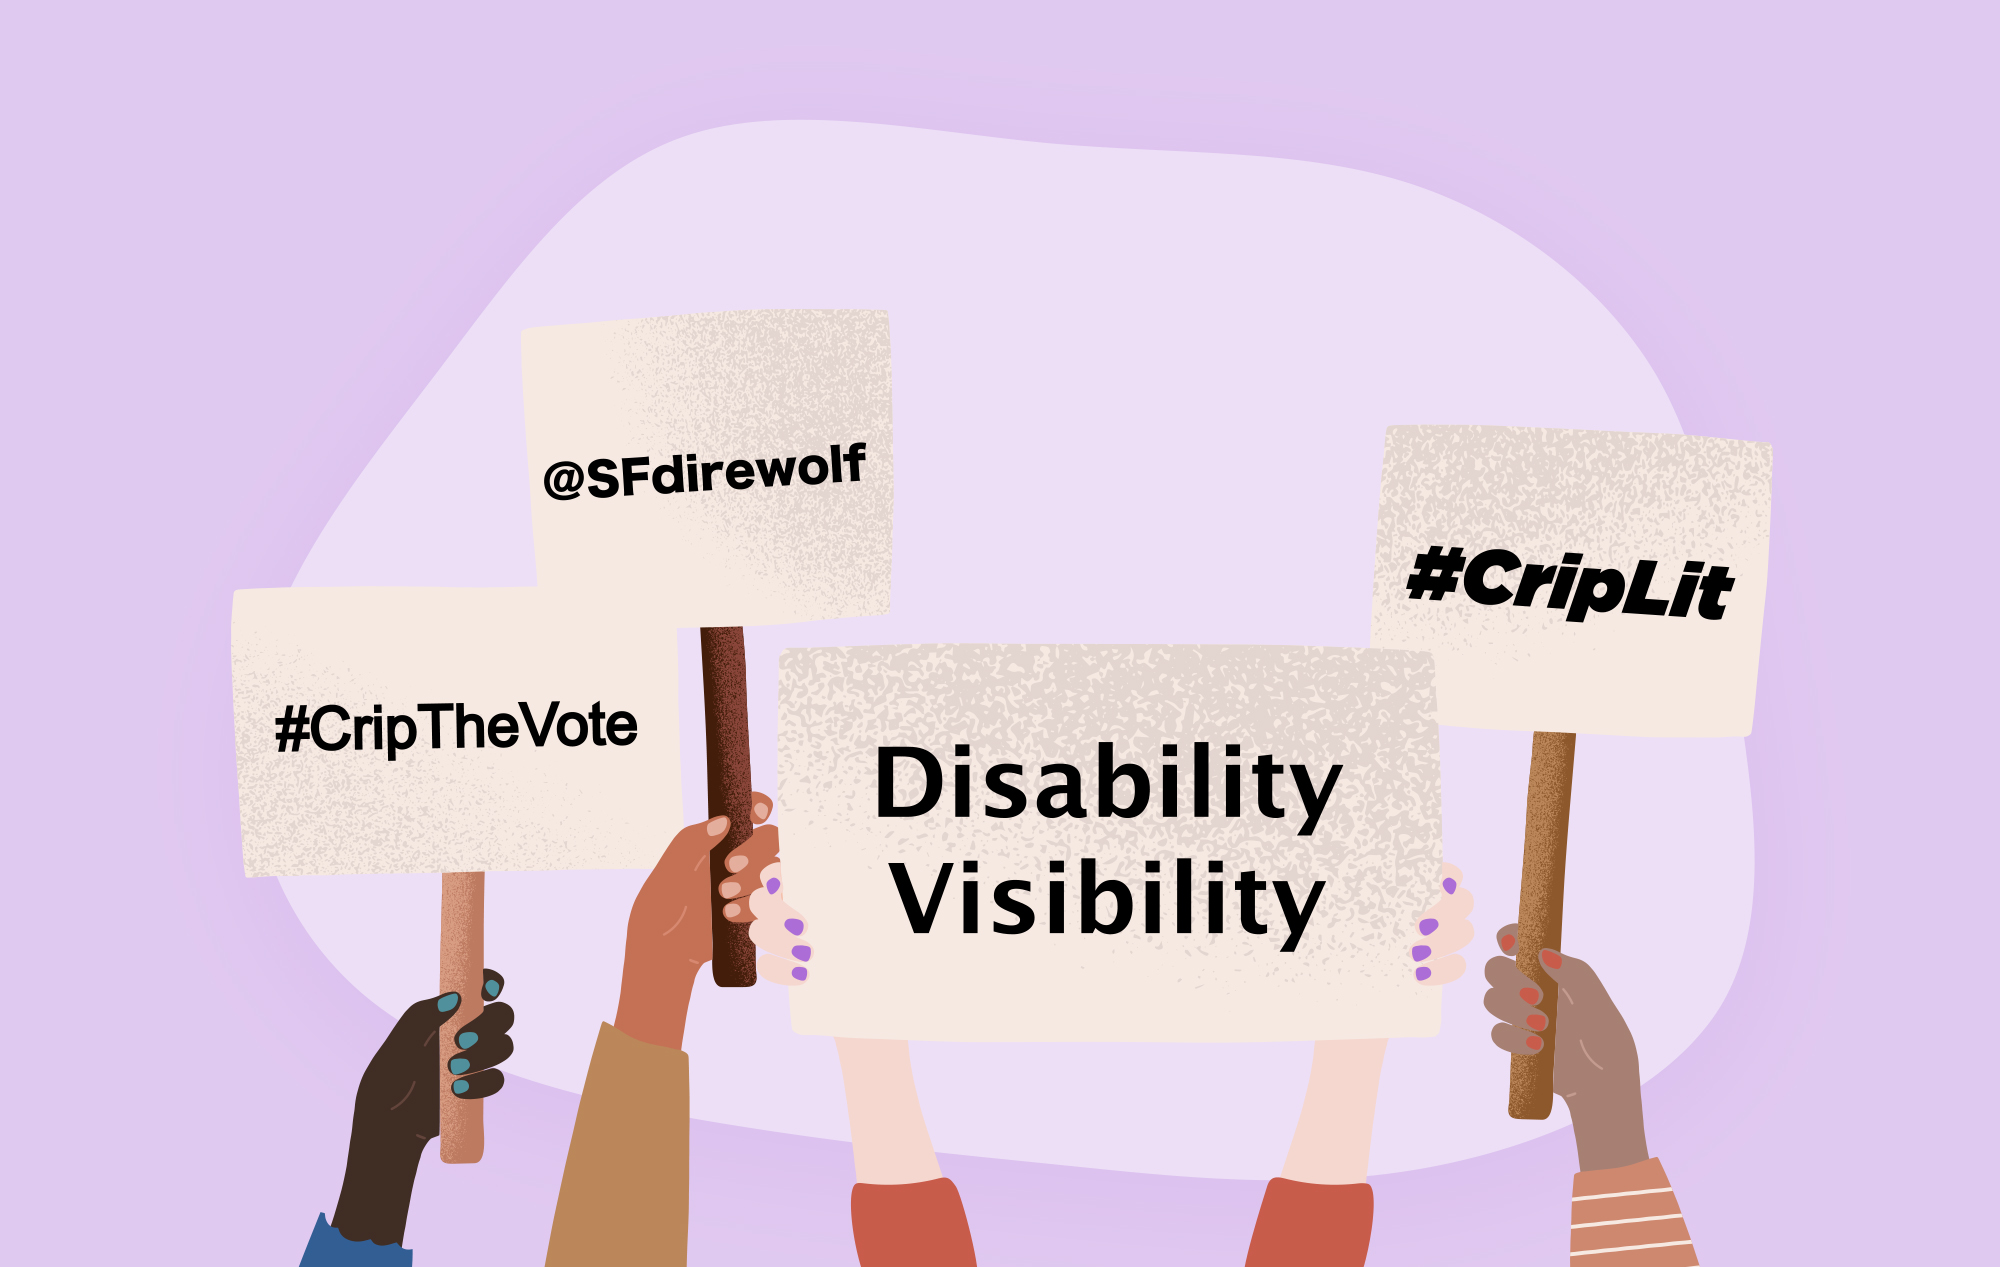 Illustration of people holding signs that say #CripTheVote, @SFdirewolf, Disability Visibility and #CripLit on a purple background.